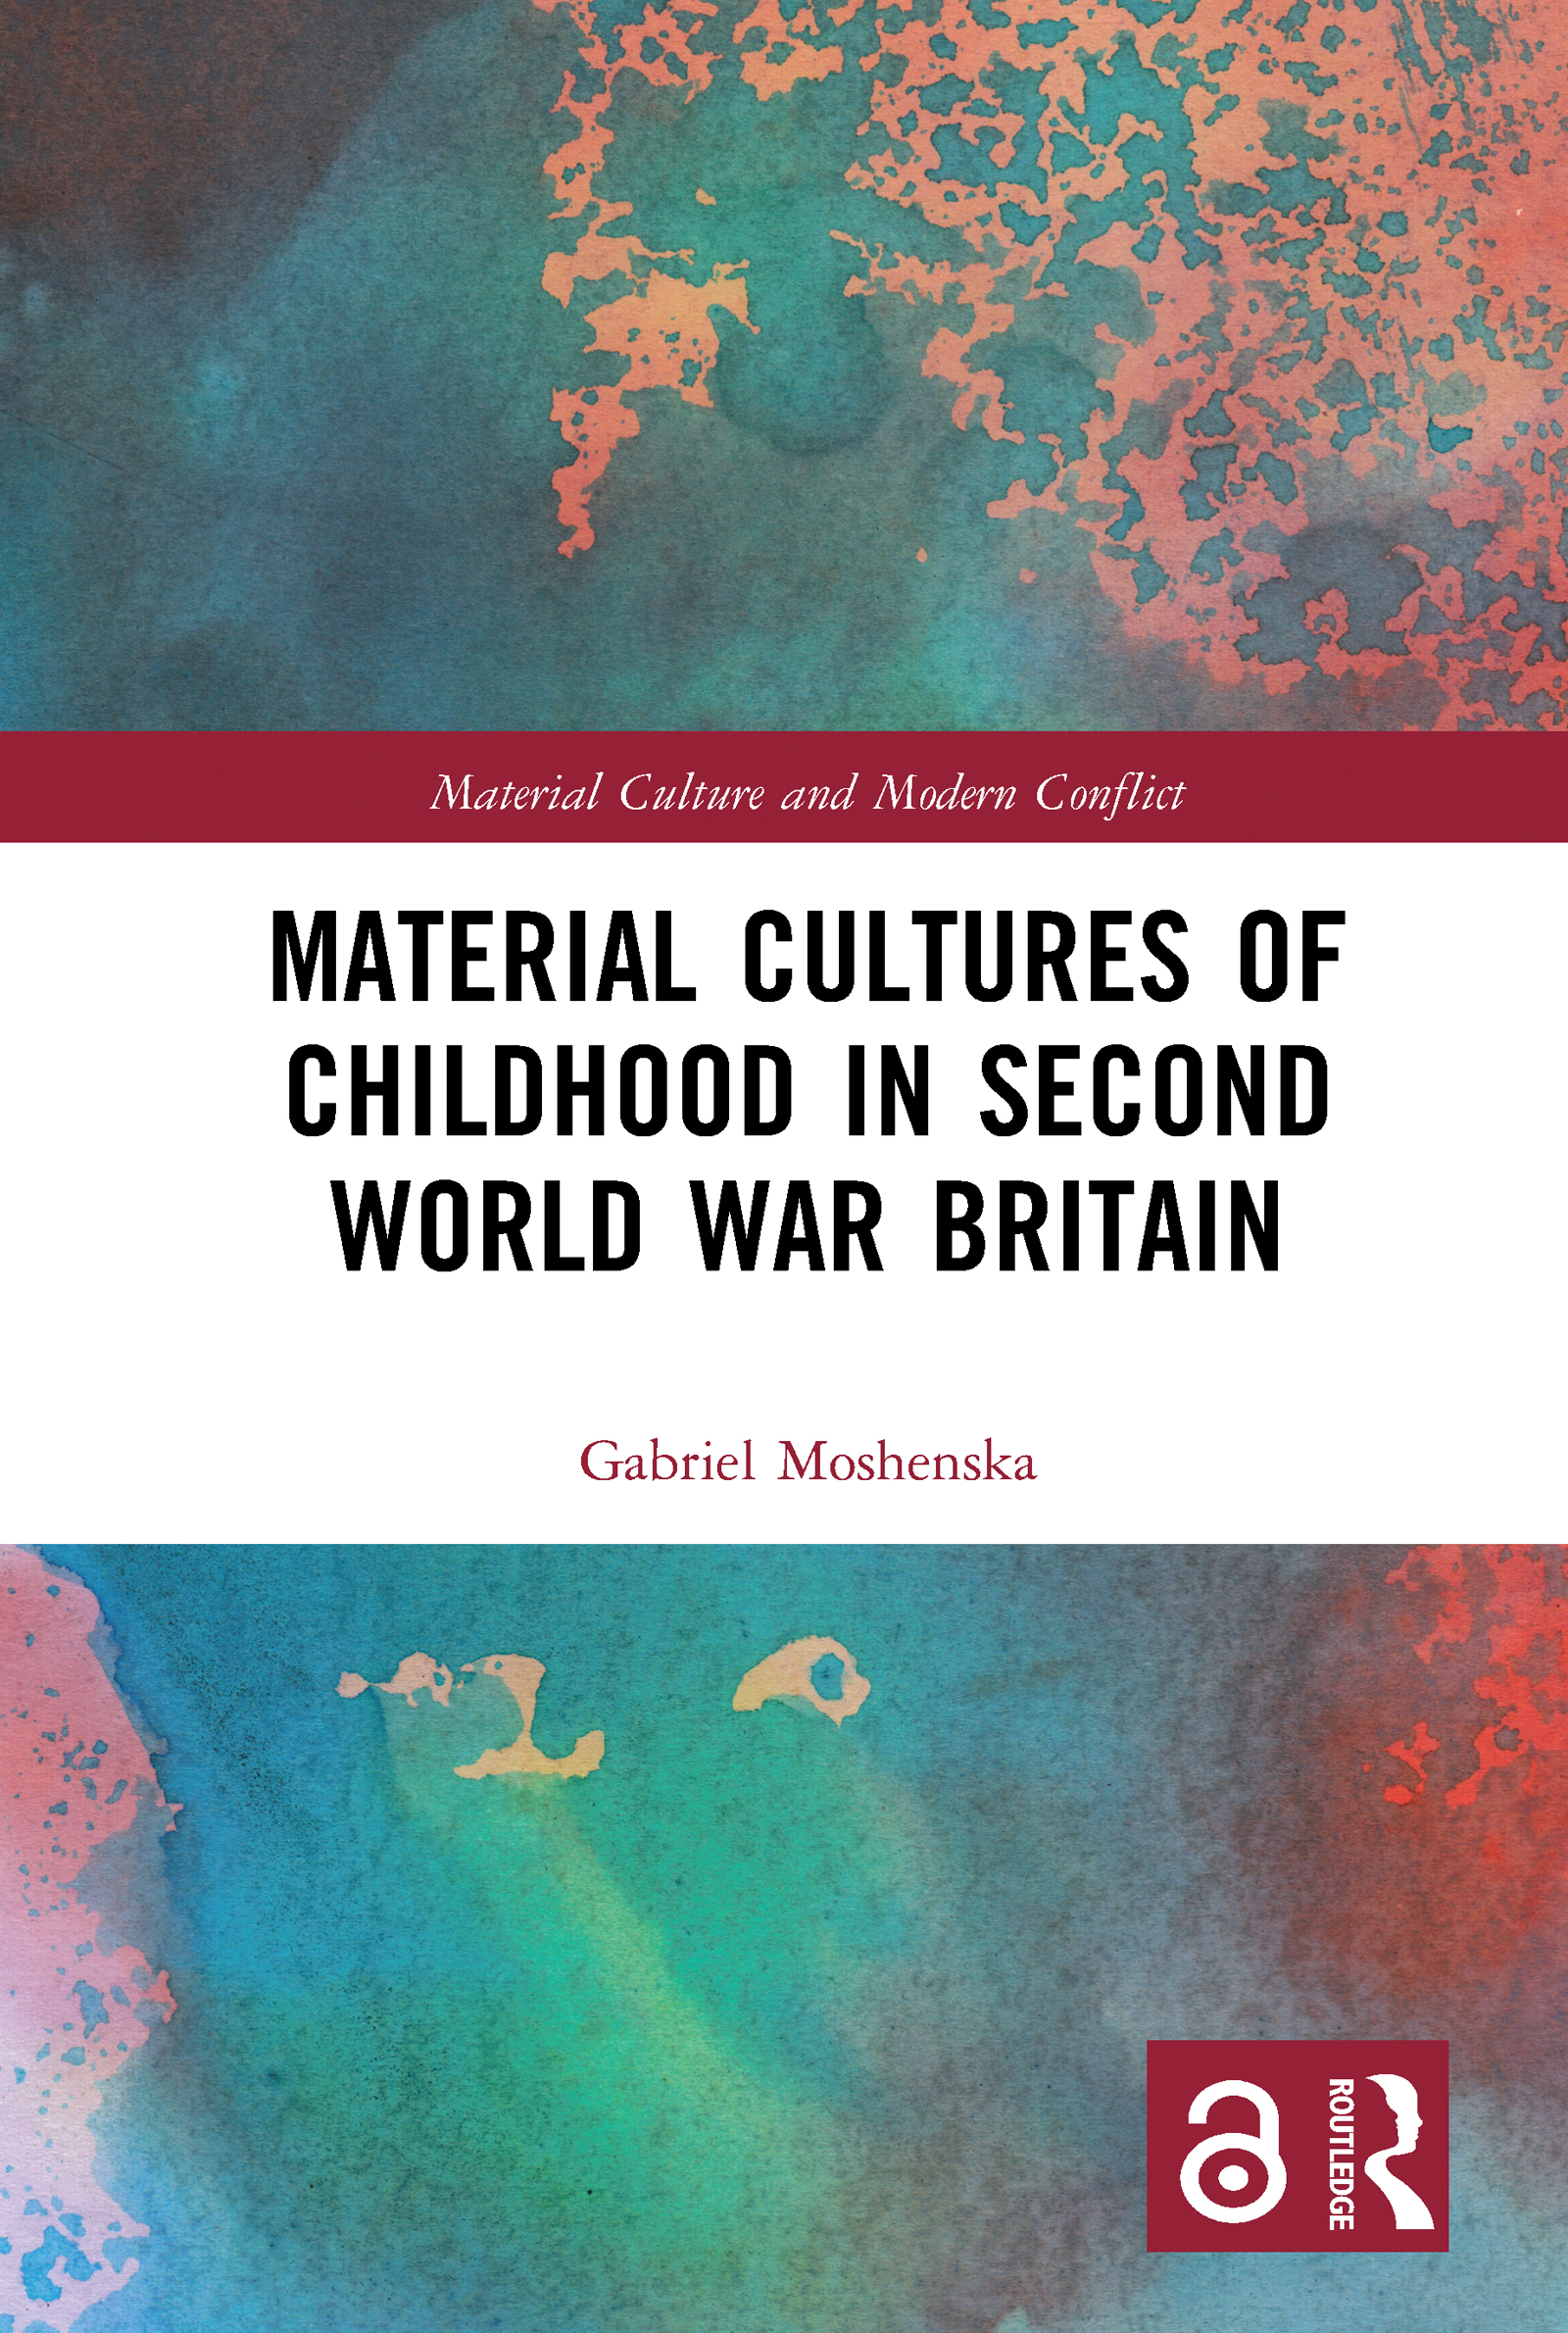 Material Cultures of Childhood in Second World War Britain